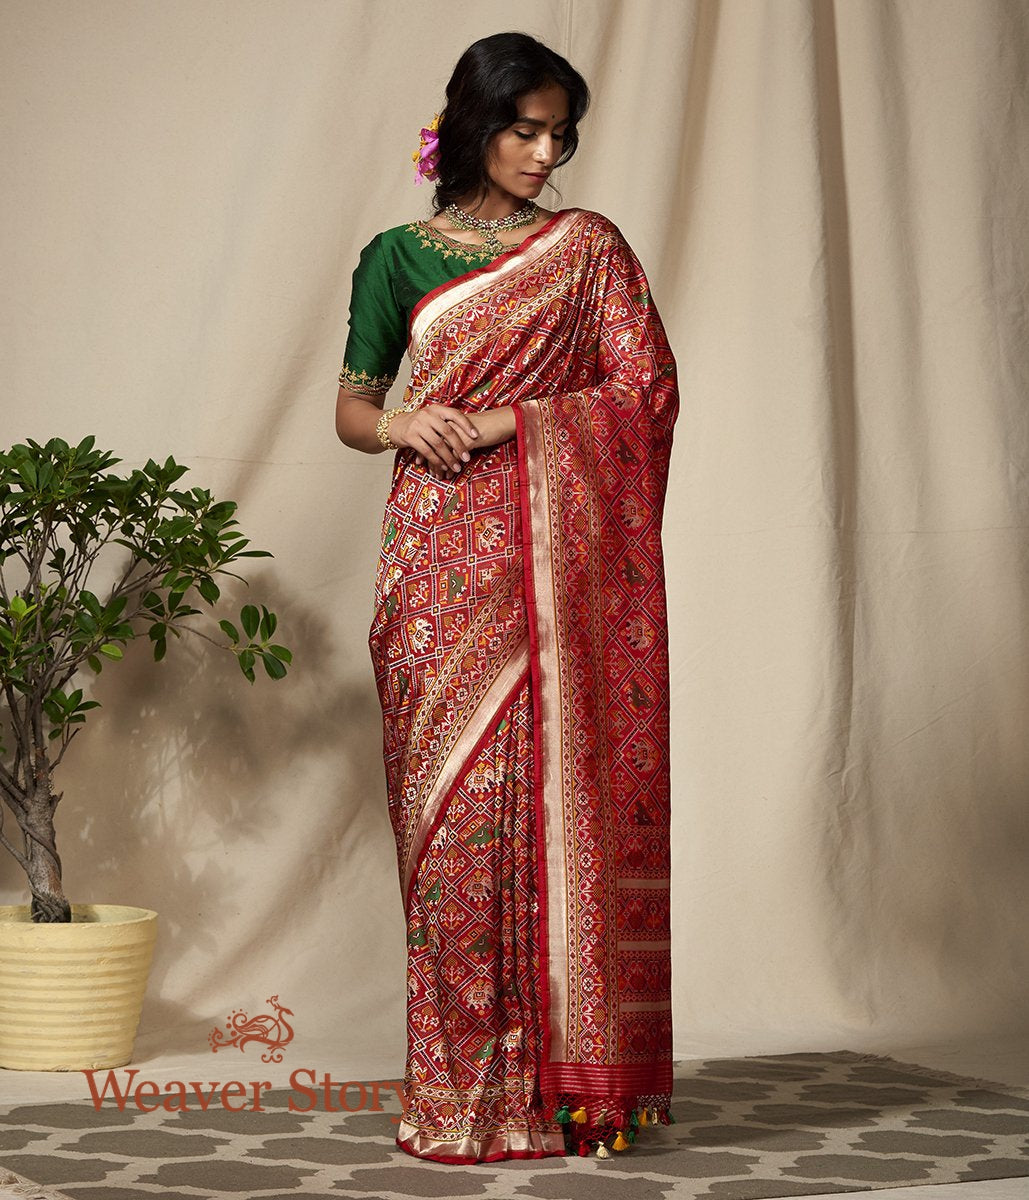 Handwoven Red Meenakari Banarasi Patola Saree with Paithani Border and Pallu